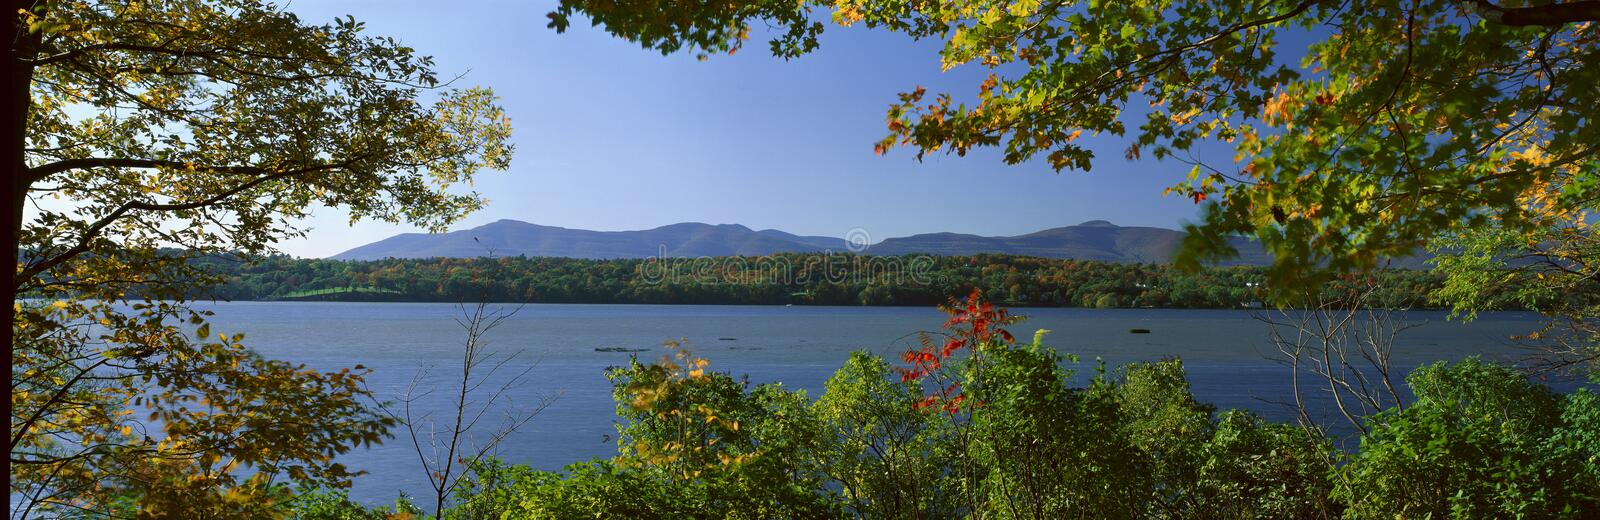 Hudson River In Autumn, Rhinebeck, New York royalty free stock photography